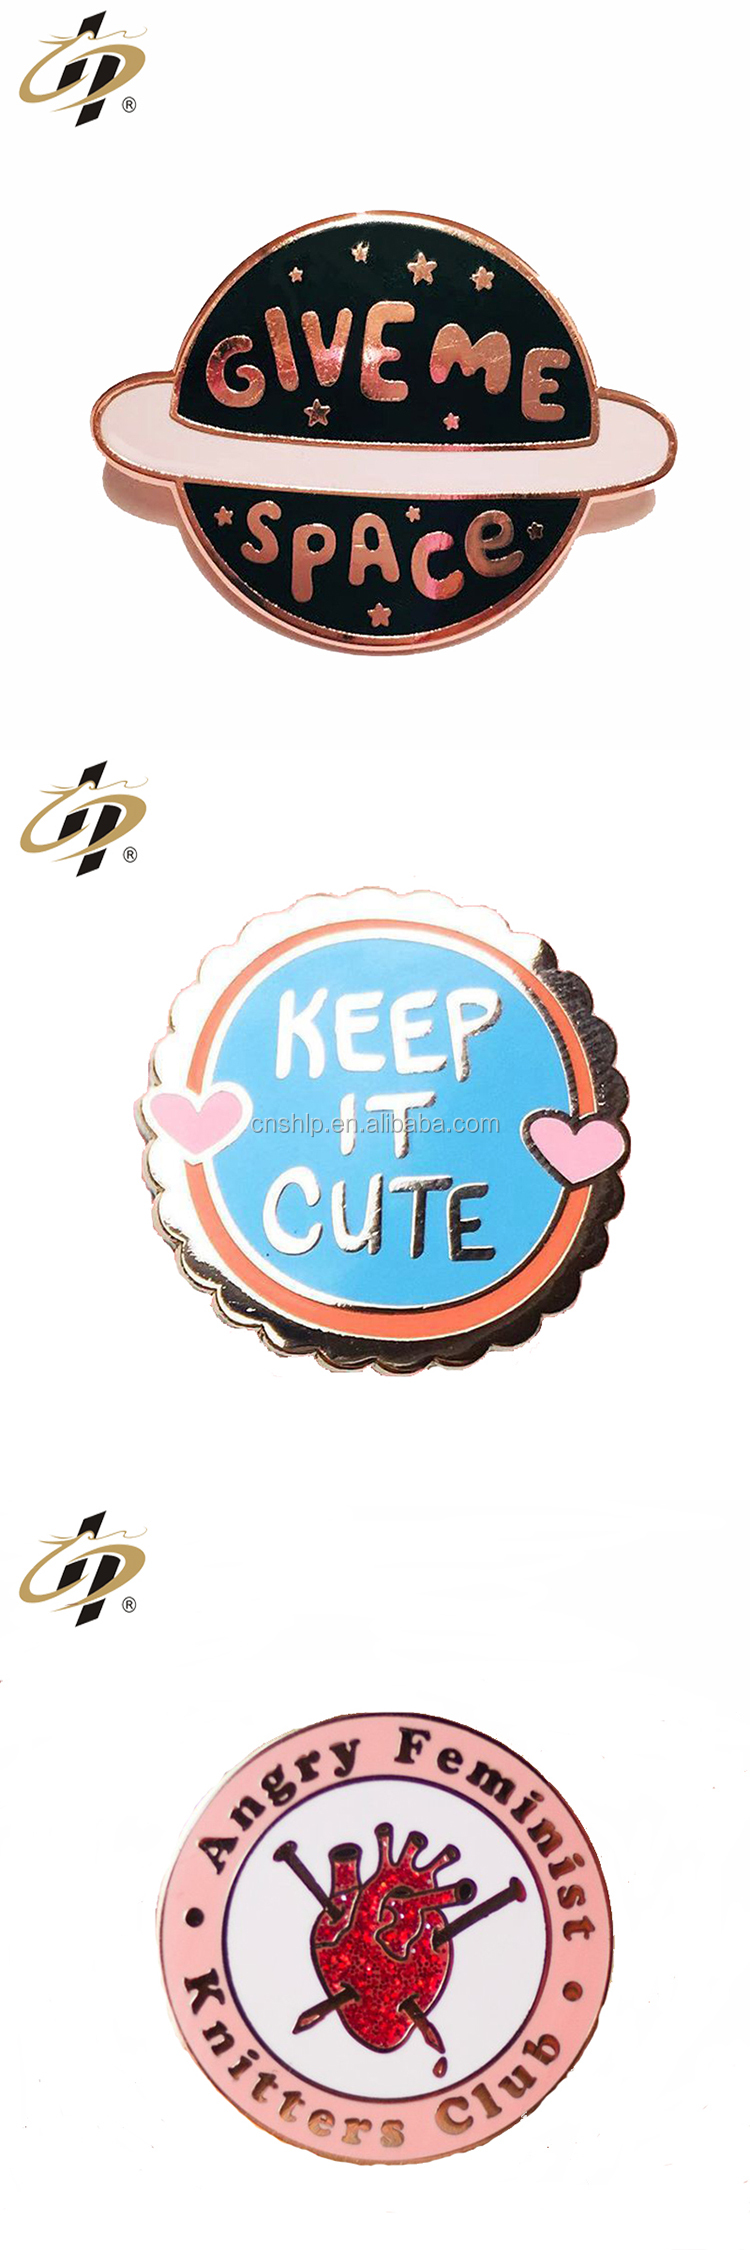 Custom metal round shaped funny enamel lapel pins